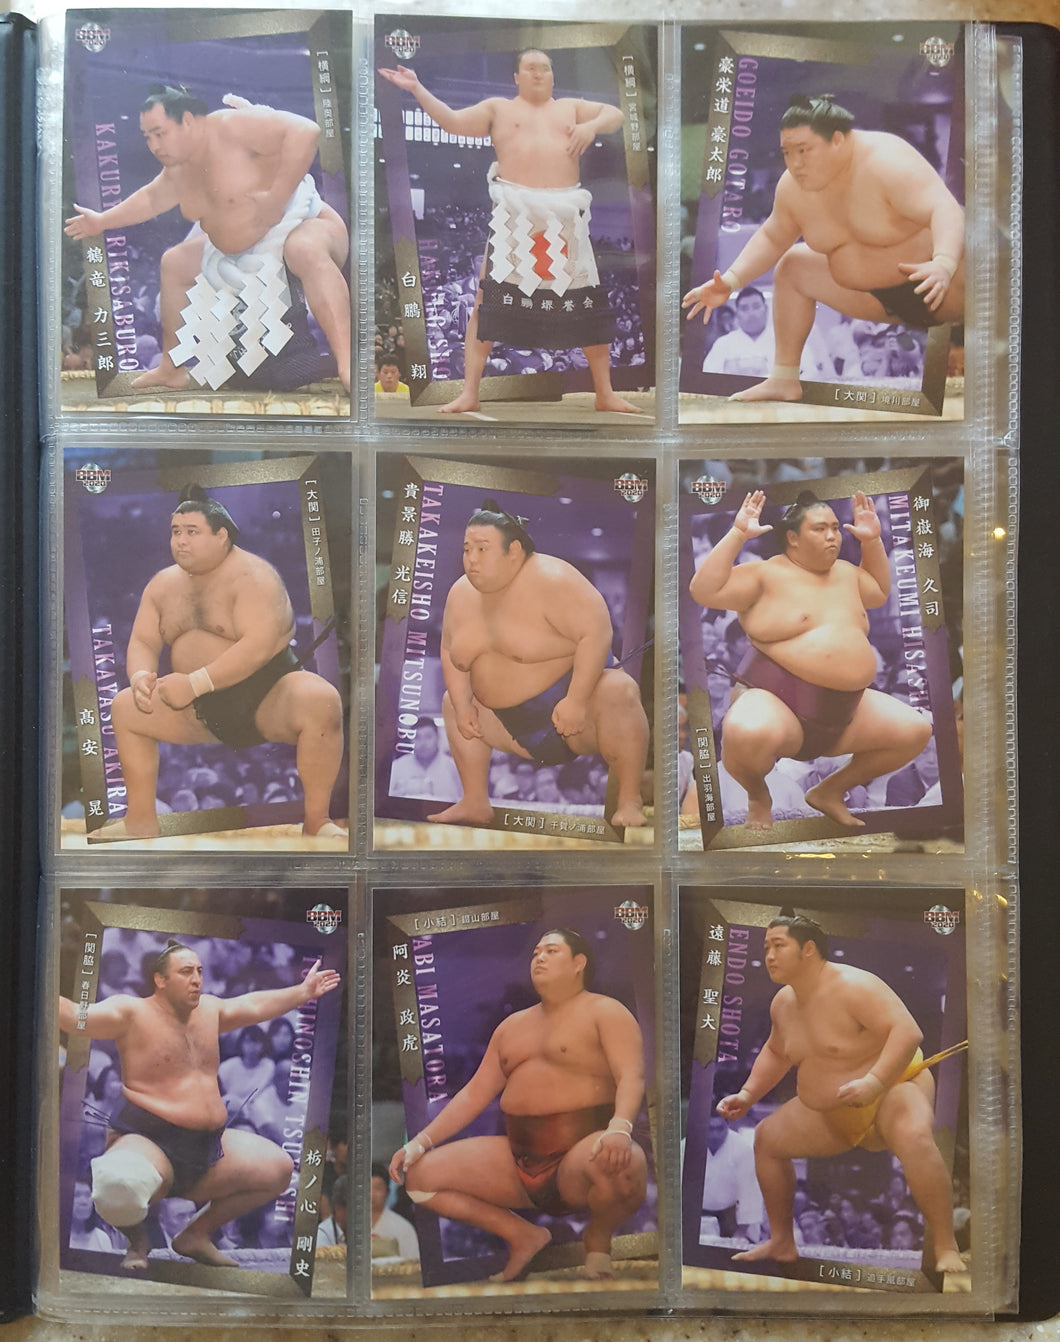 Trading Card 9-pocket collector's album